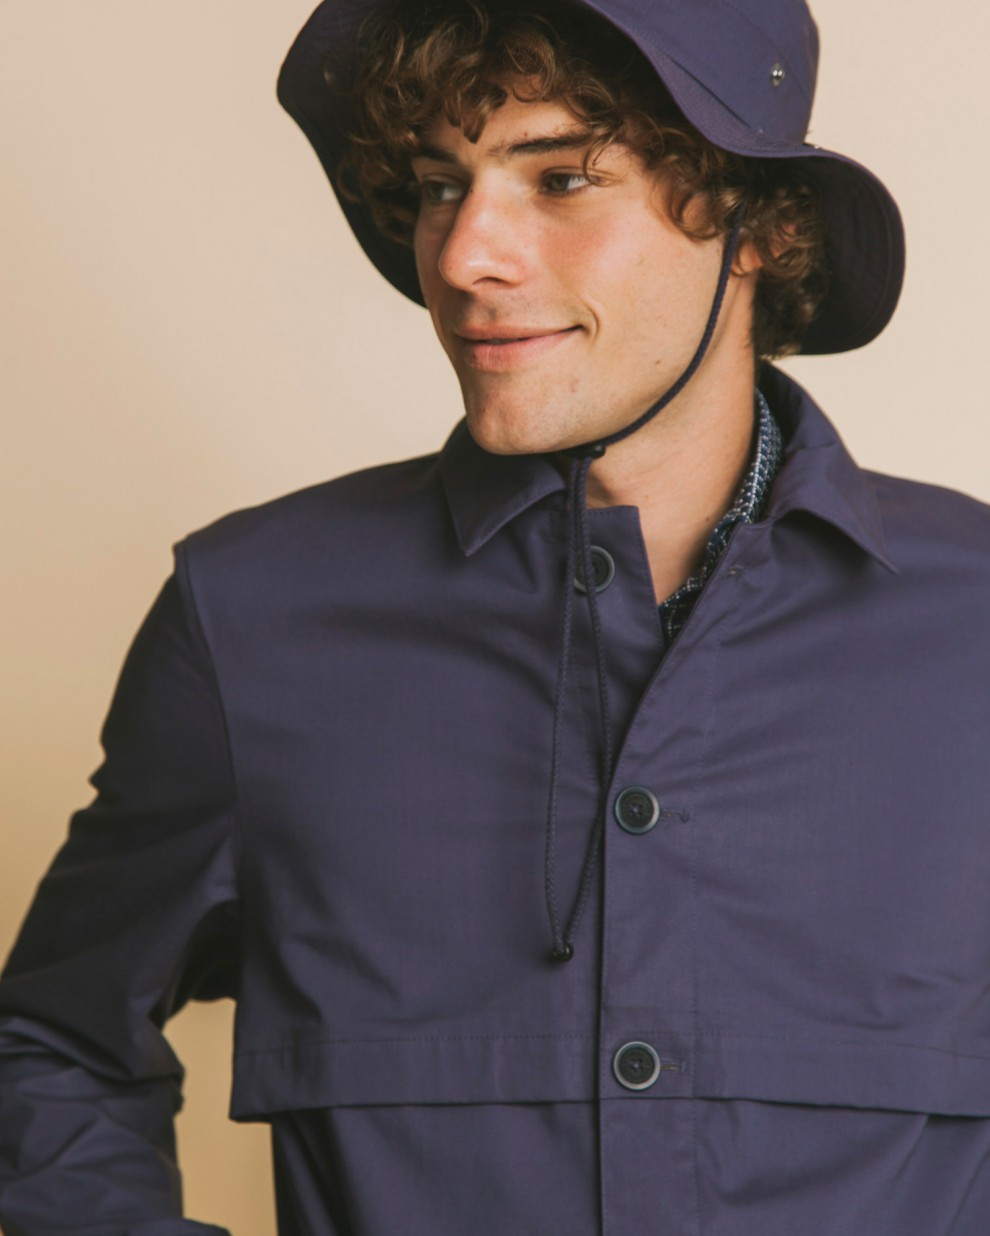 Blue Okavango raincoat